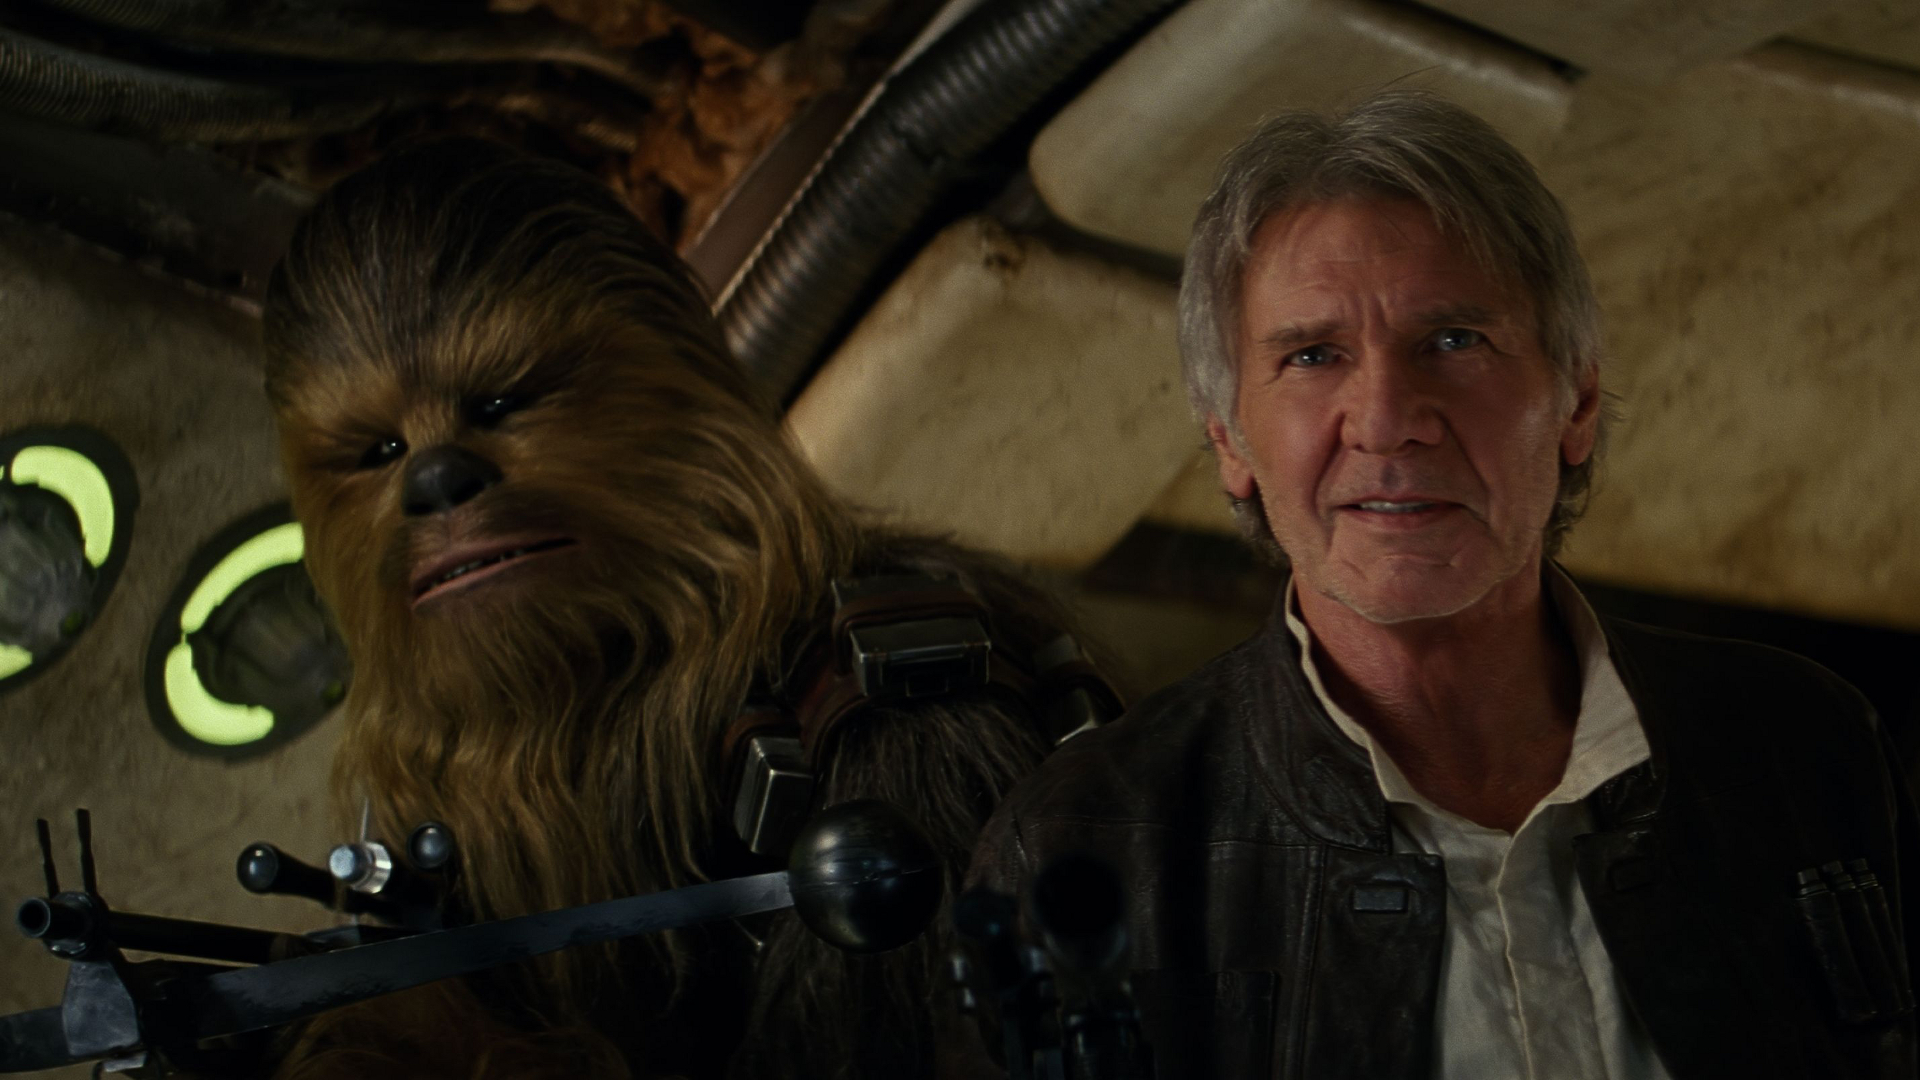 Star Wars: The Force Awakens, 02, Chewbacca, Han Solo (1920x1080)